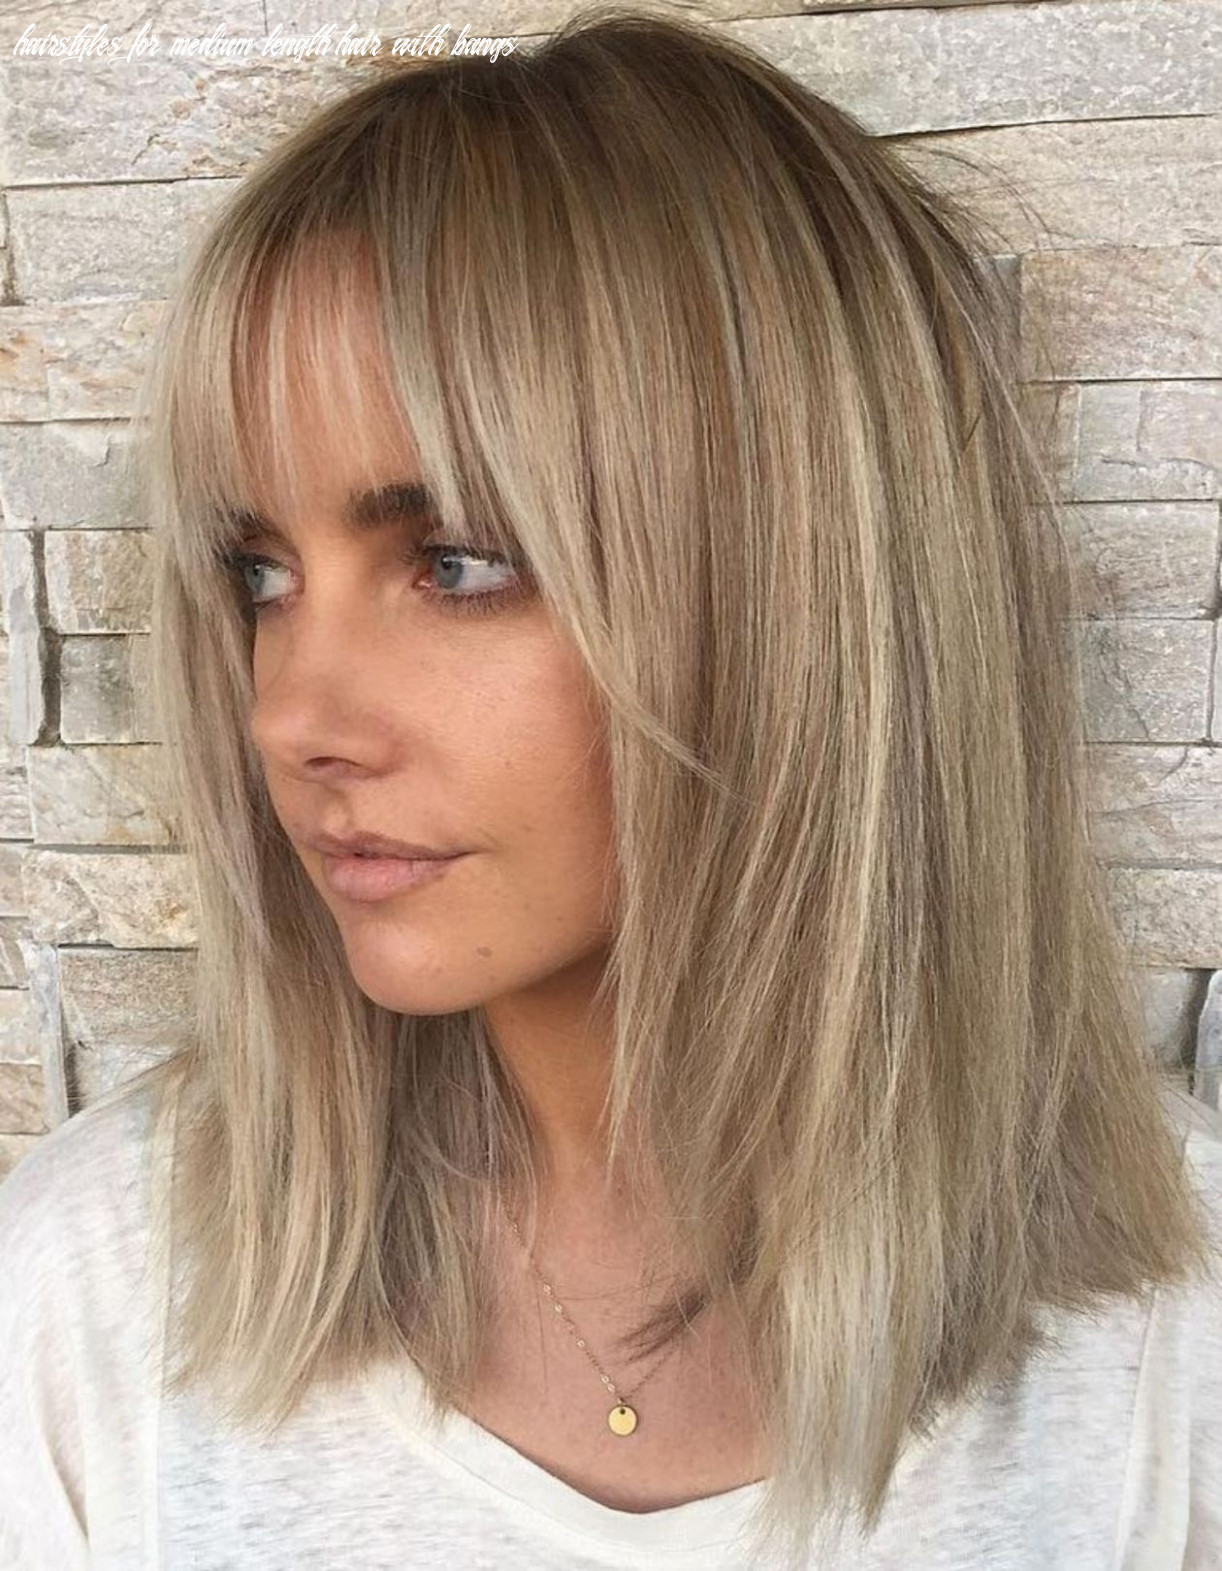 Pin on fringe hairstyles hairstyles for medium length hair with bangs